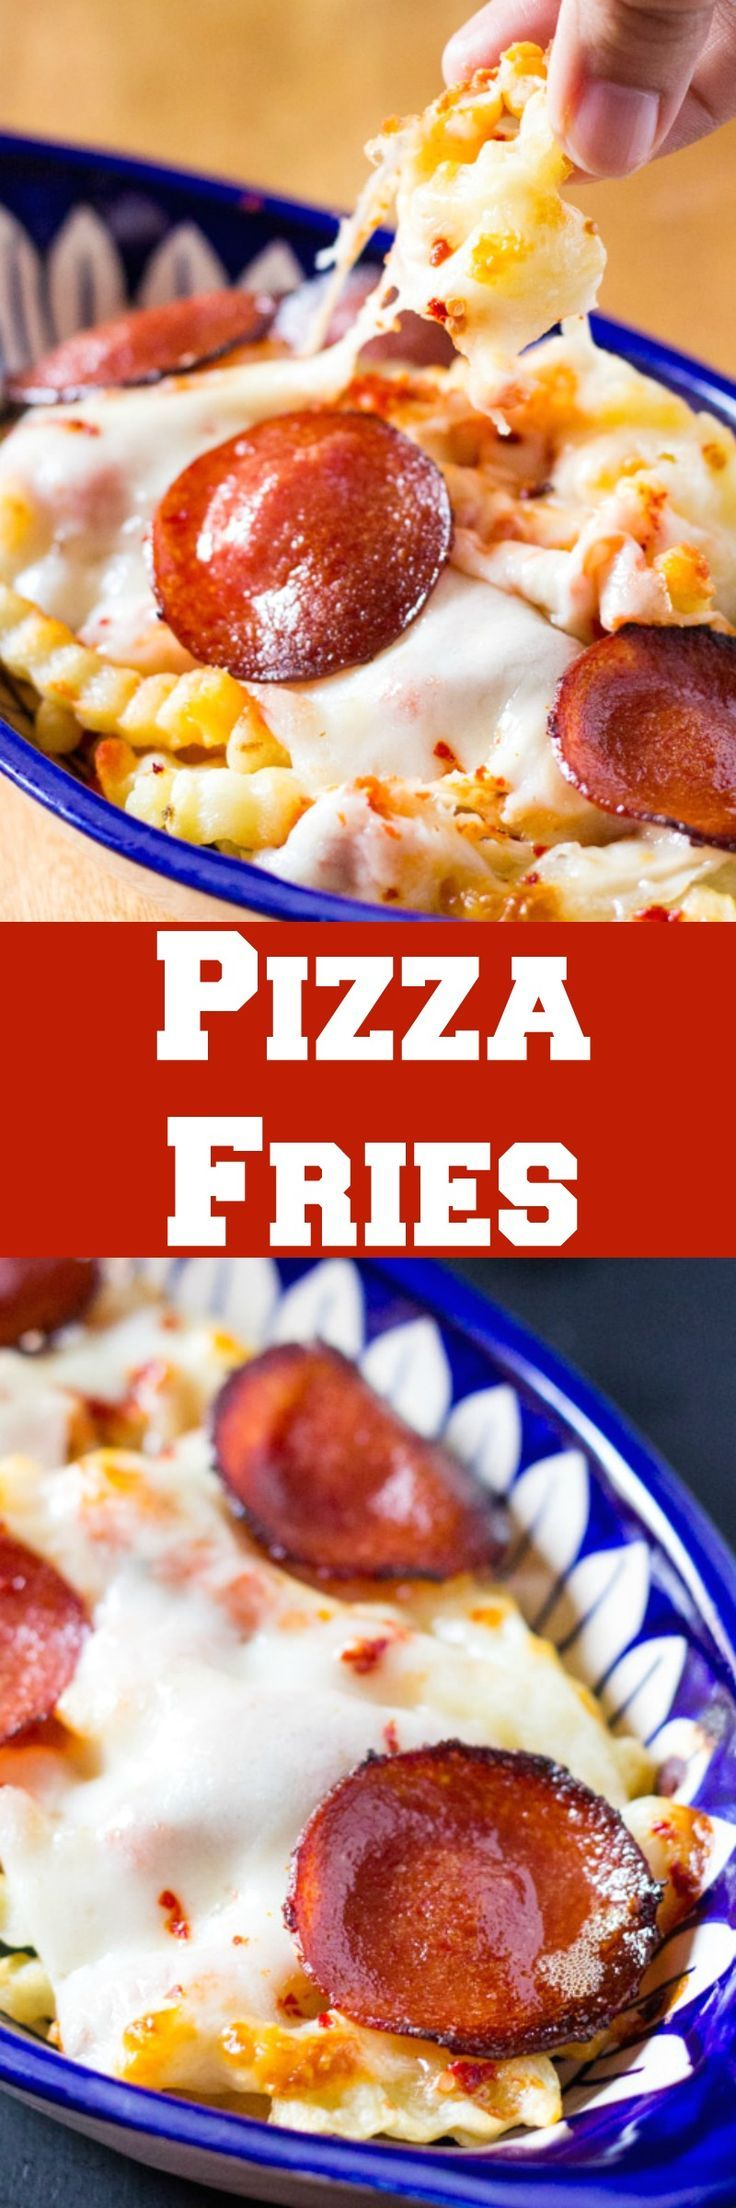 These pizza fries are loaded with pizza sauce, pepperoni and mozzarella cheese. An easy and delicious recipe for all pizza lovers!